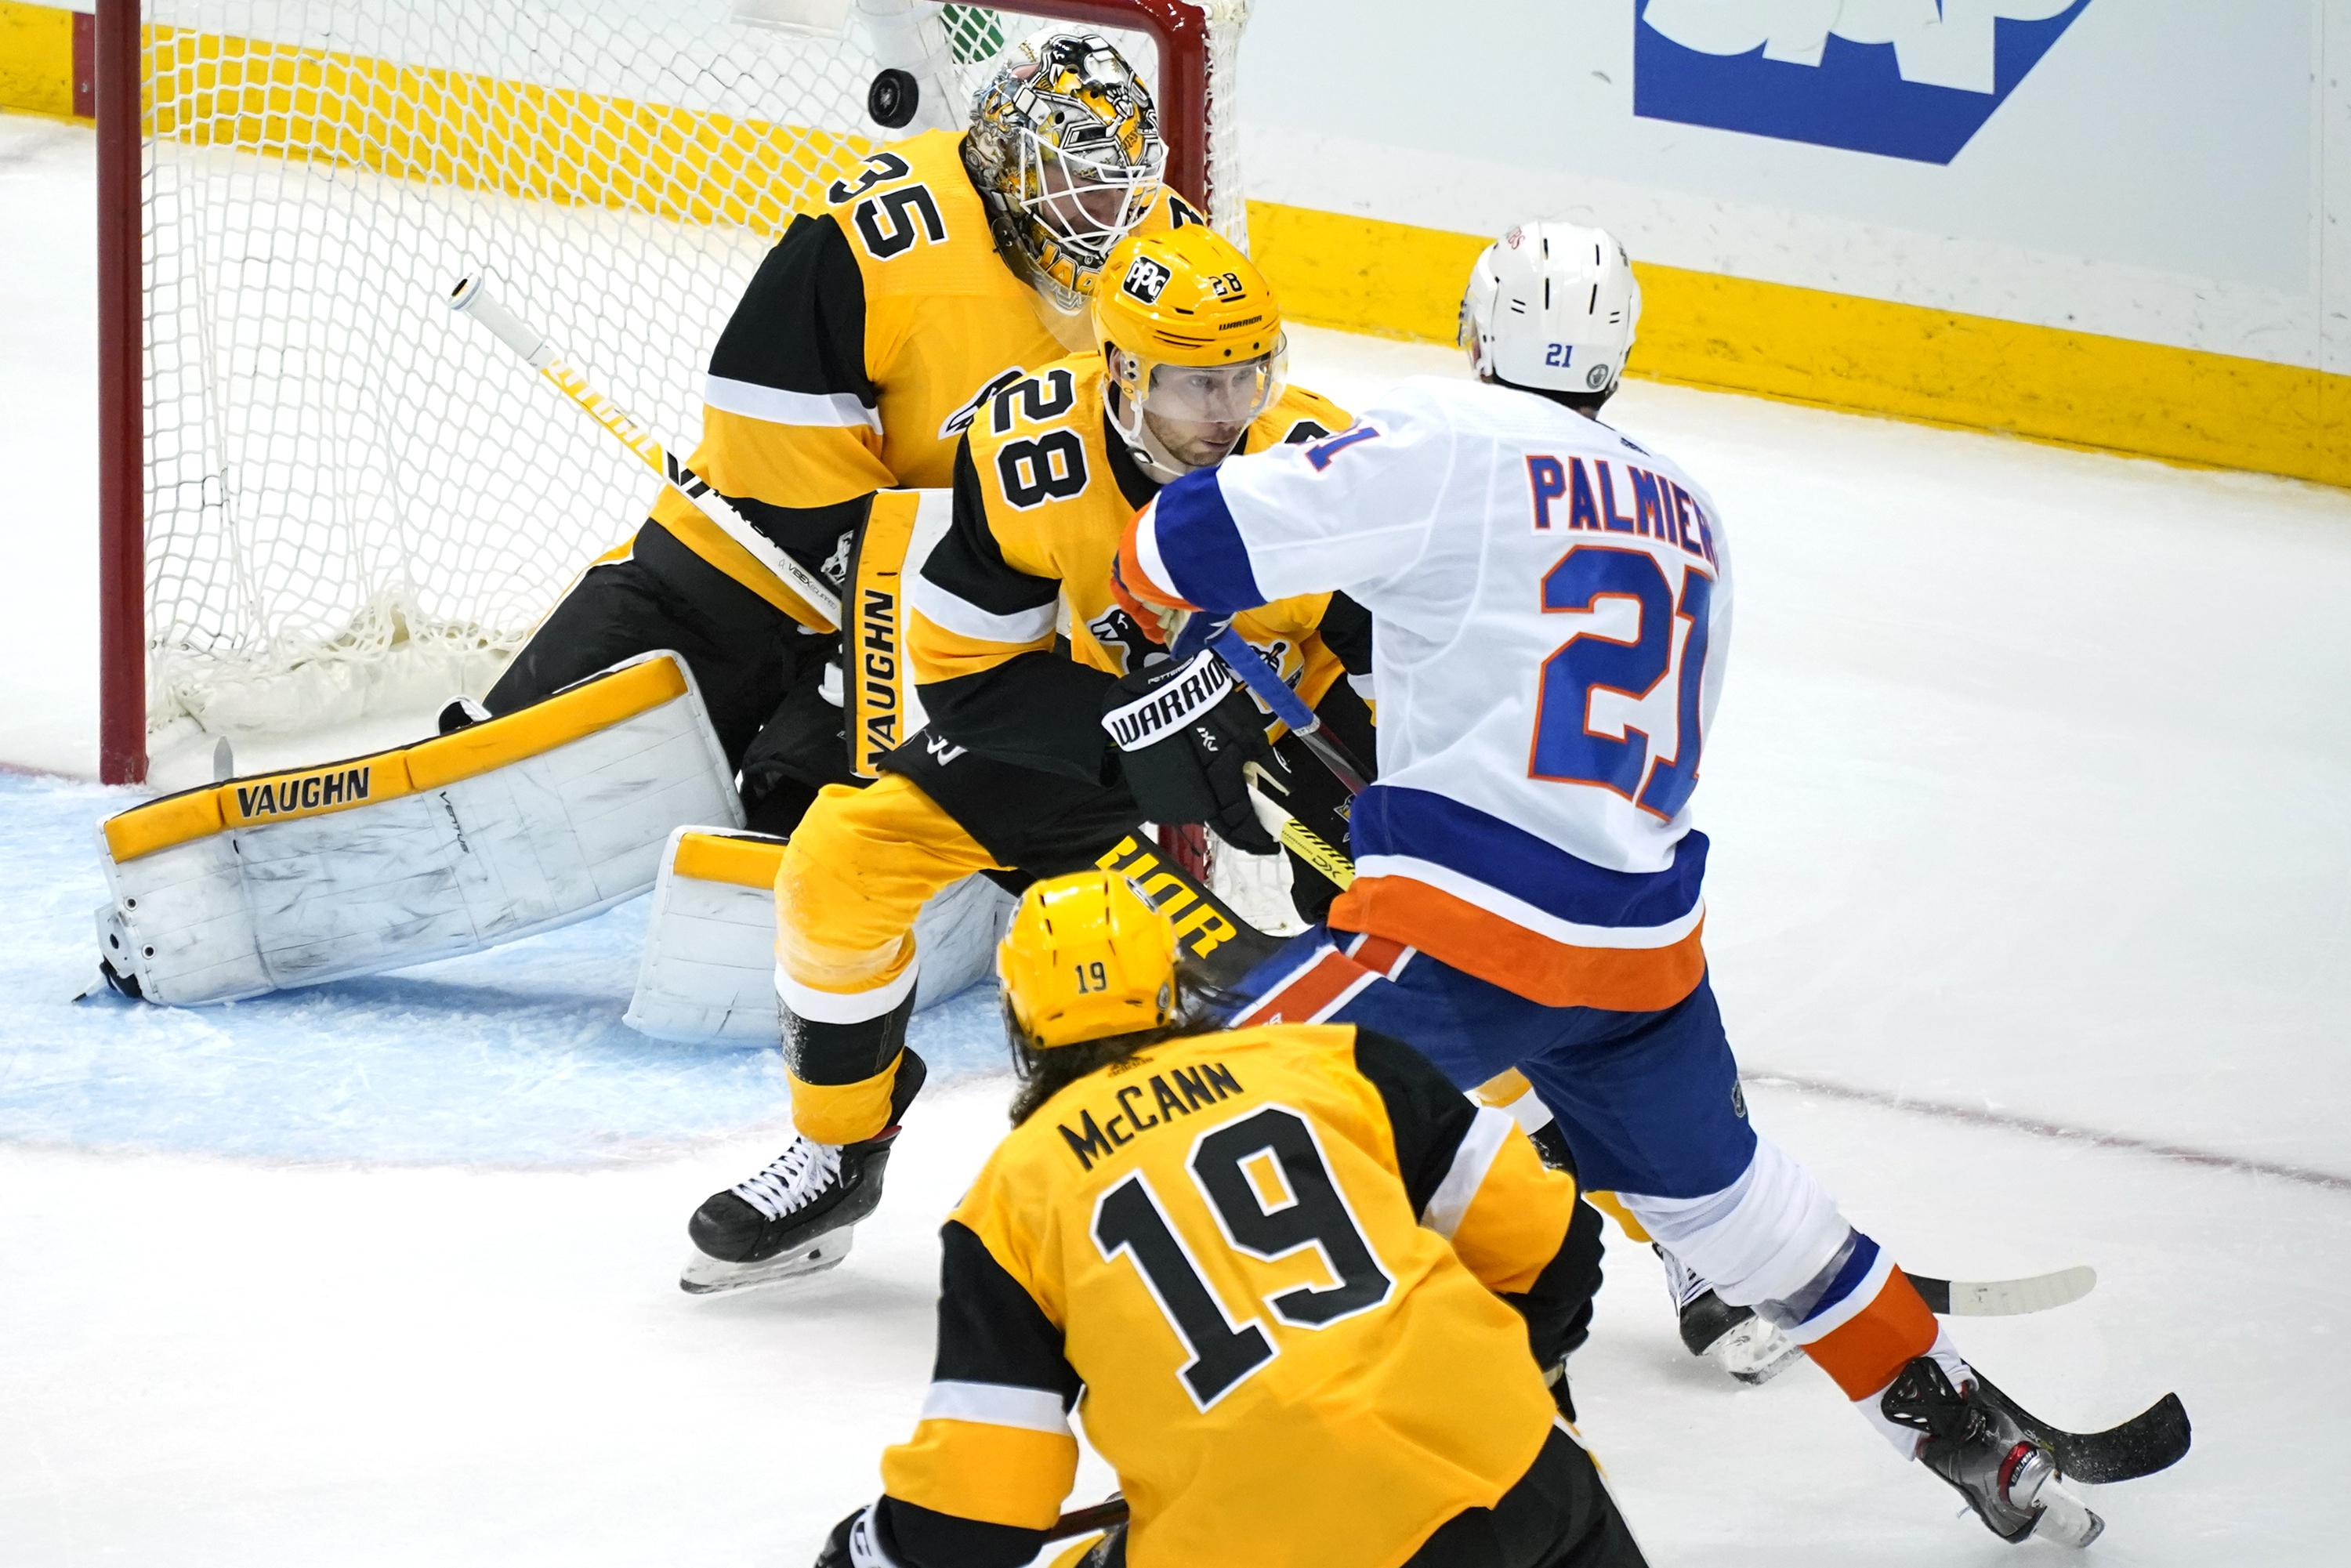 Palmieri scores in OT, Islanders beat Penguins 4-3 in Game 1